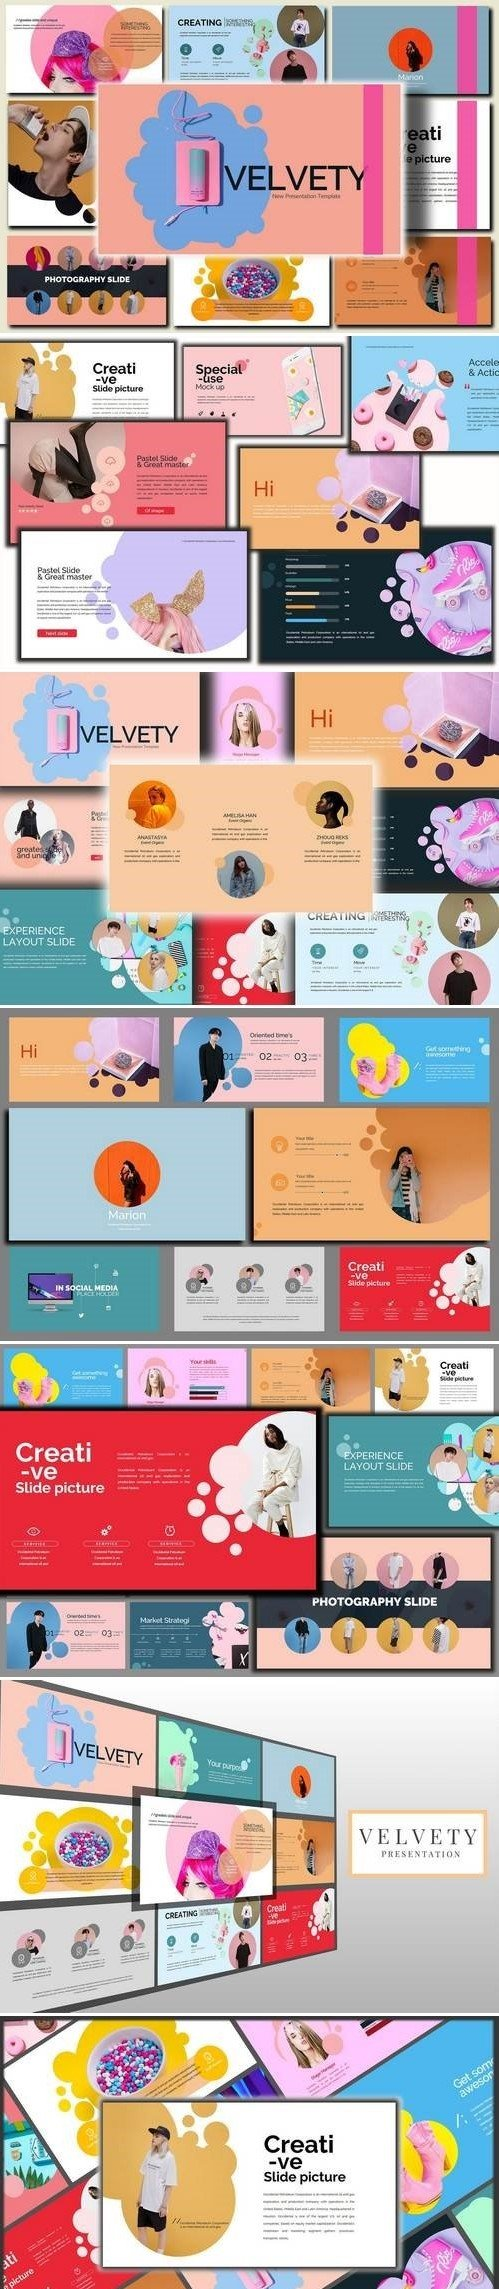 Velvety Fashion Powerpoint and Keynote Template